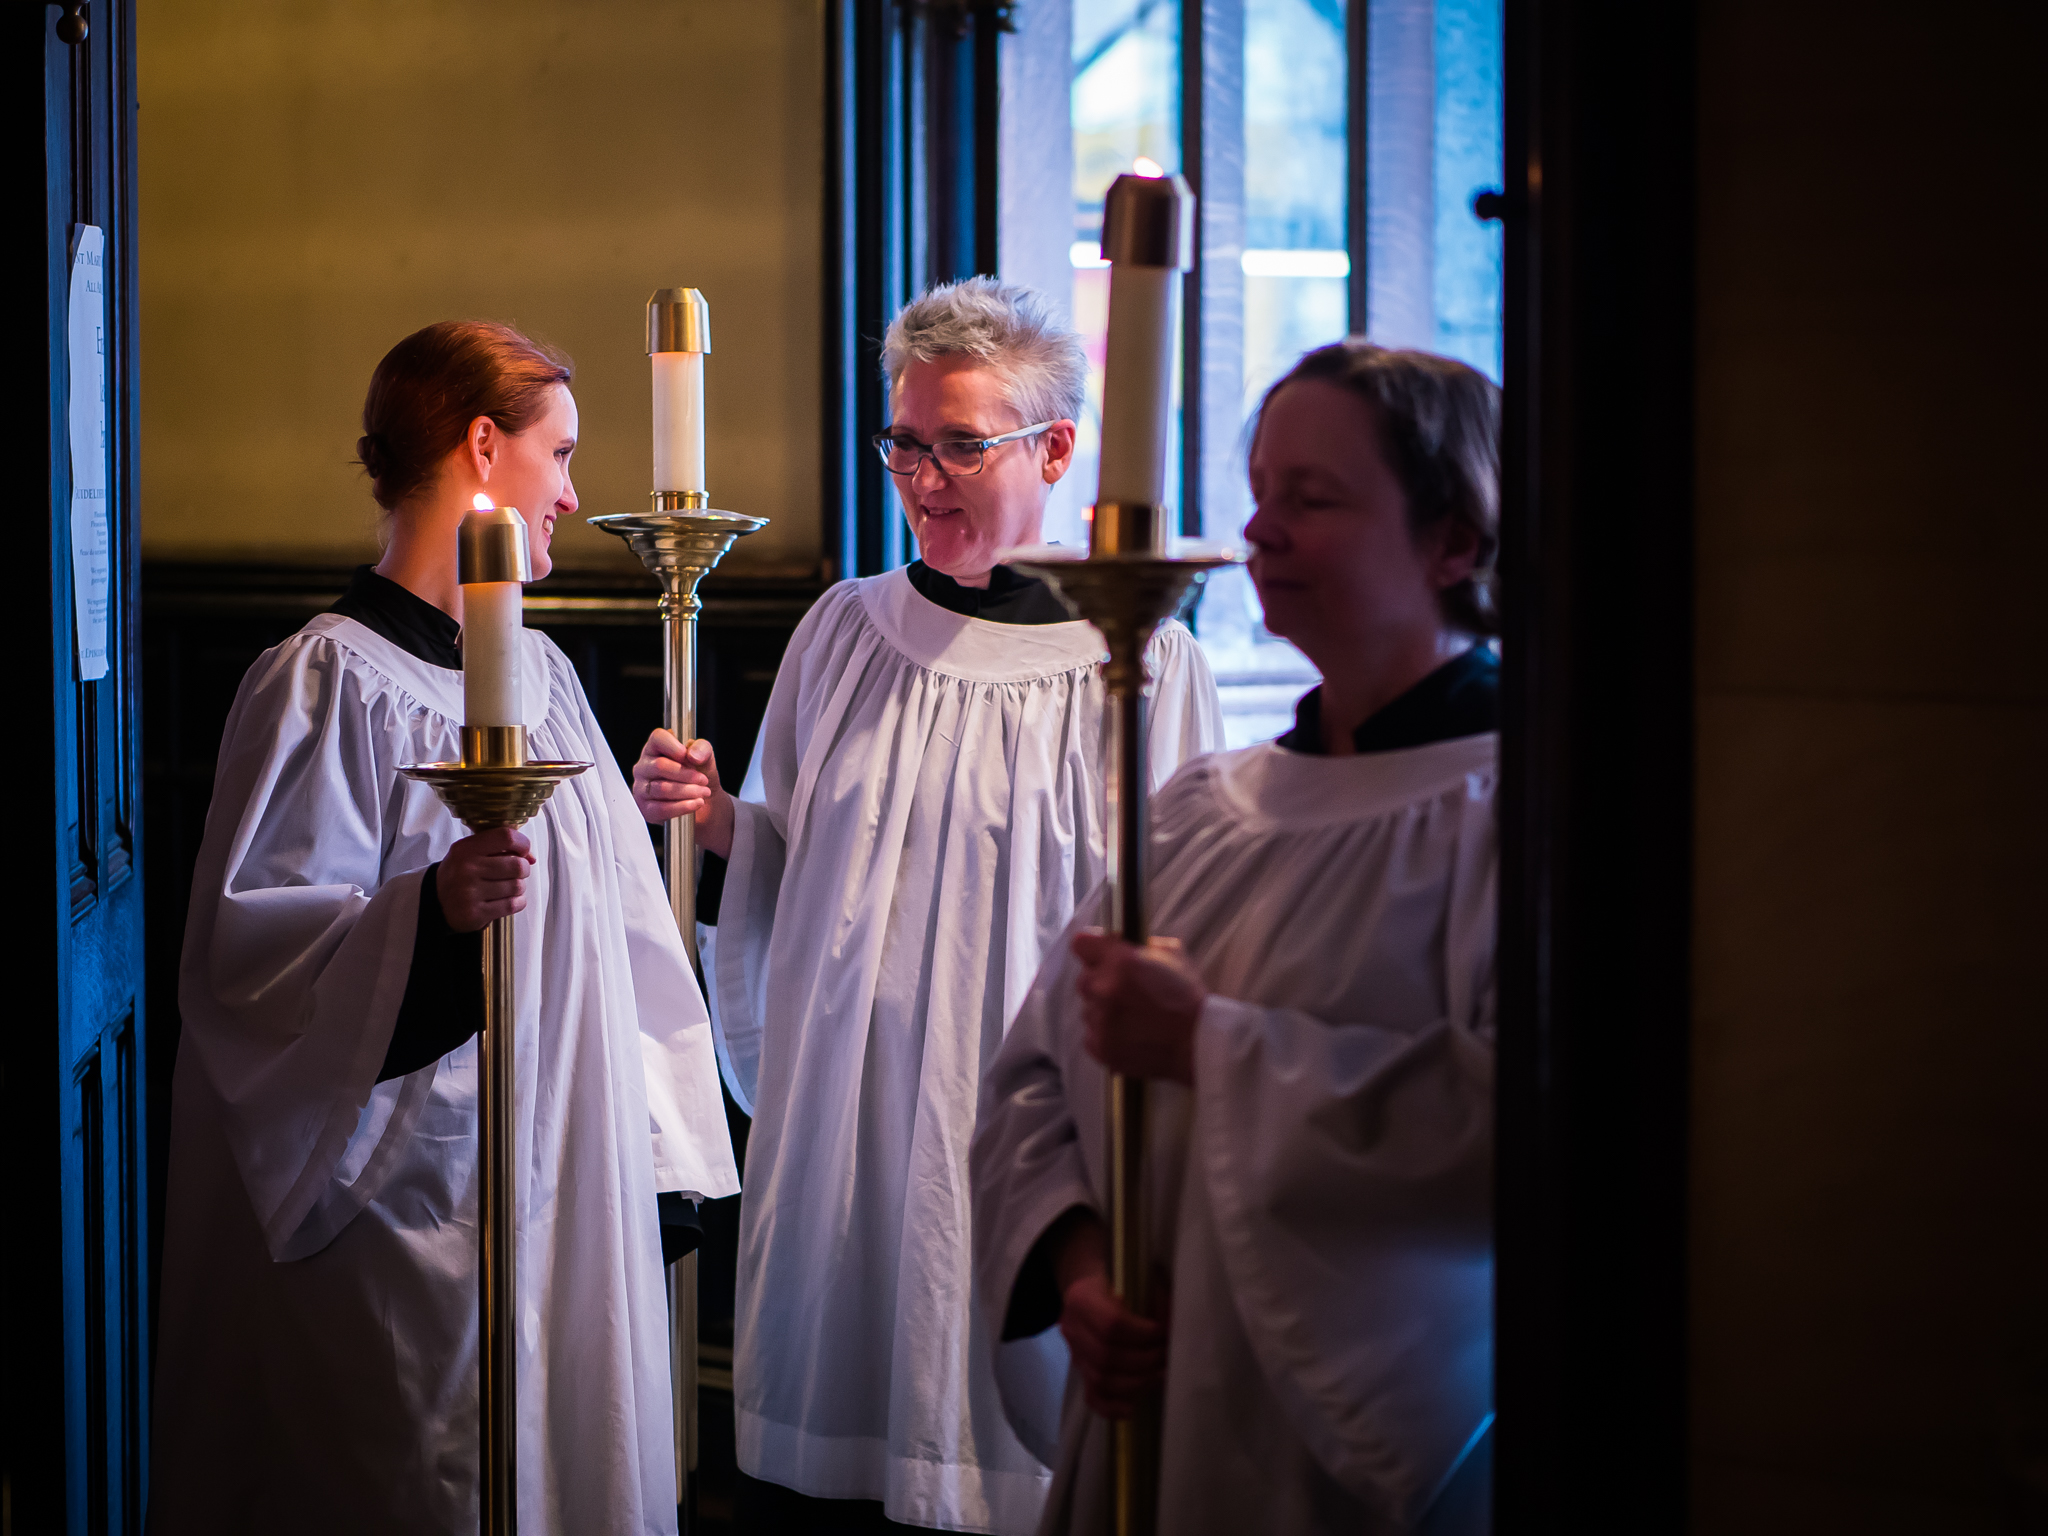 Behind the scenes: Grace Mudd (L), Marie Rosseels, and Marie Postelwate waiting for the procession of gifts to begin.  Photo by Ricardo Gomez